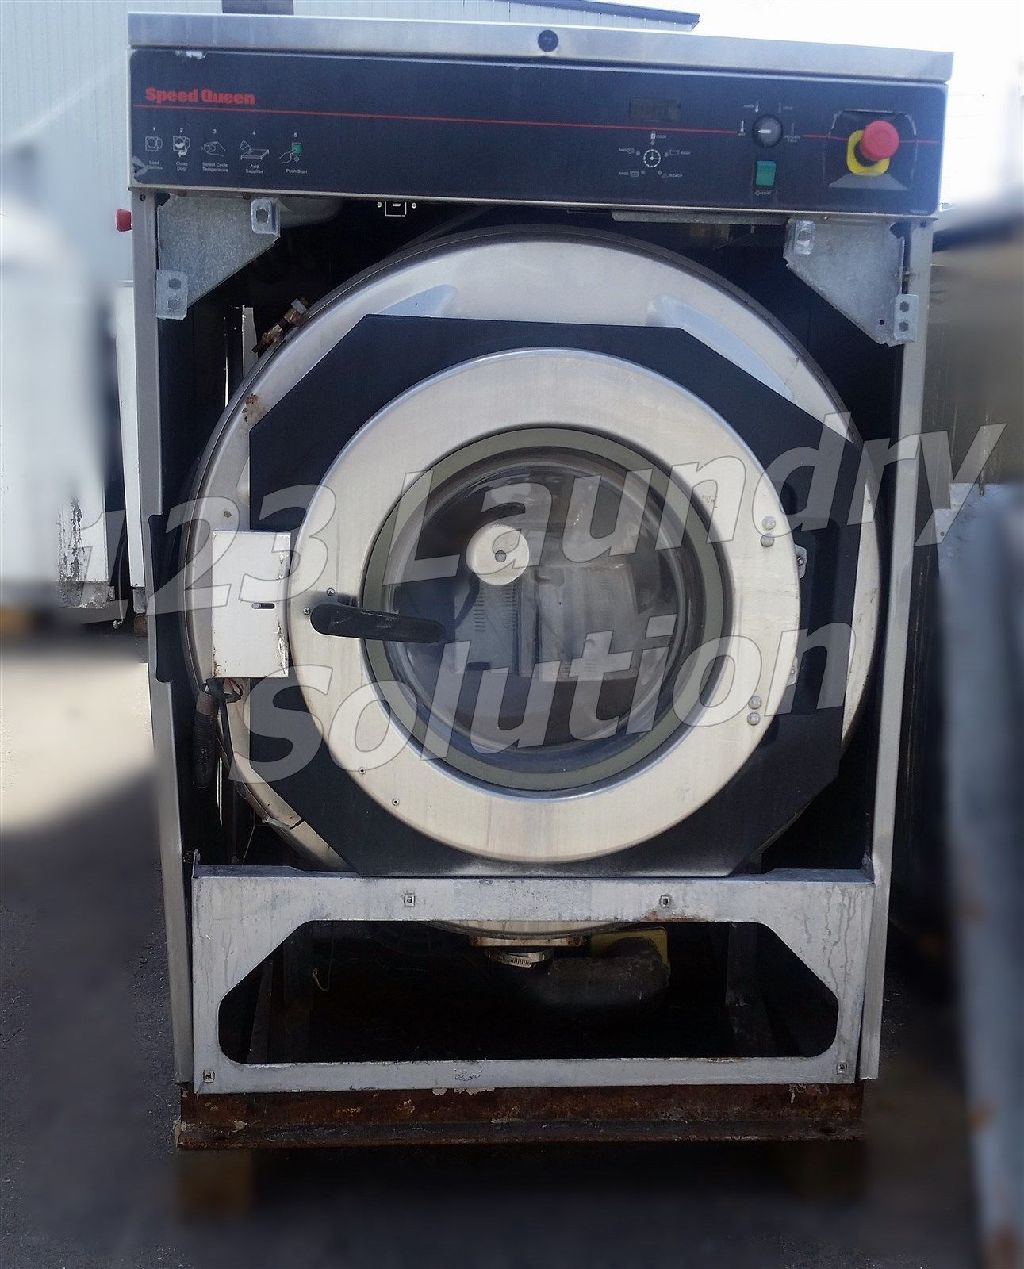 Coin Laundry Speed Queen Front Load Washer OPL 60LB 3PH 220V SCN060GN2OU1001 AS-IS